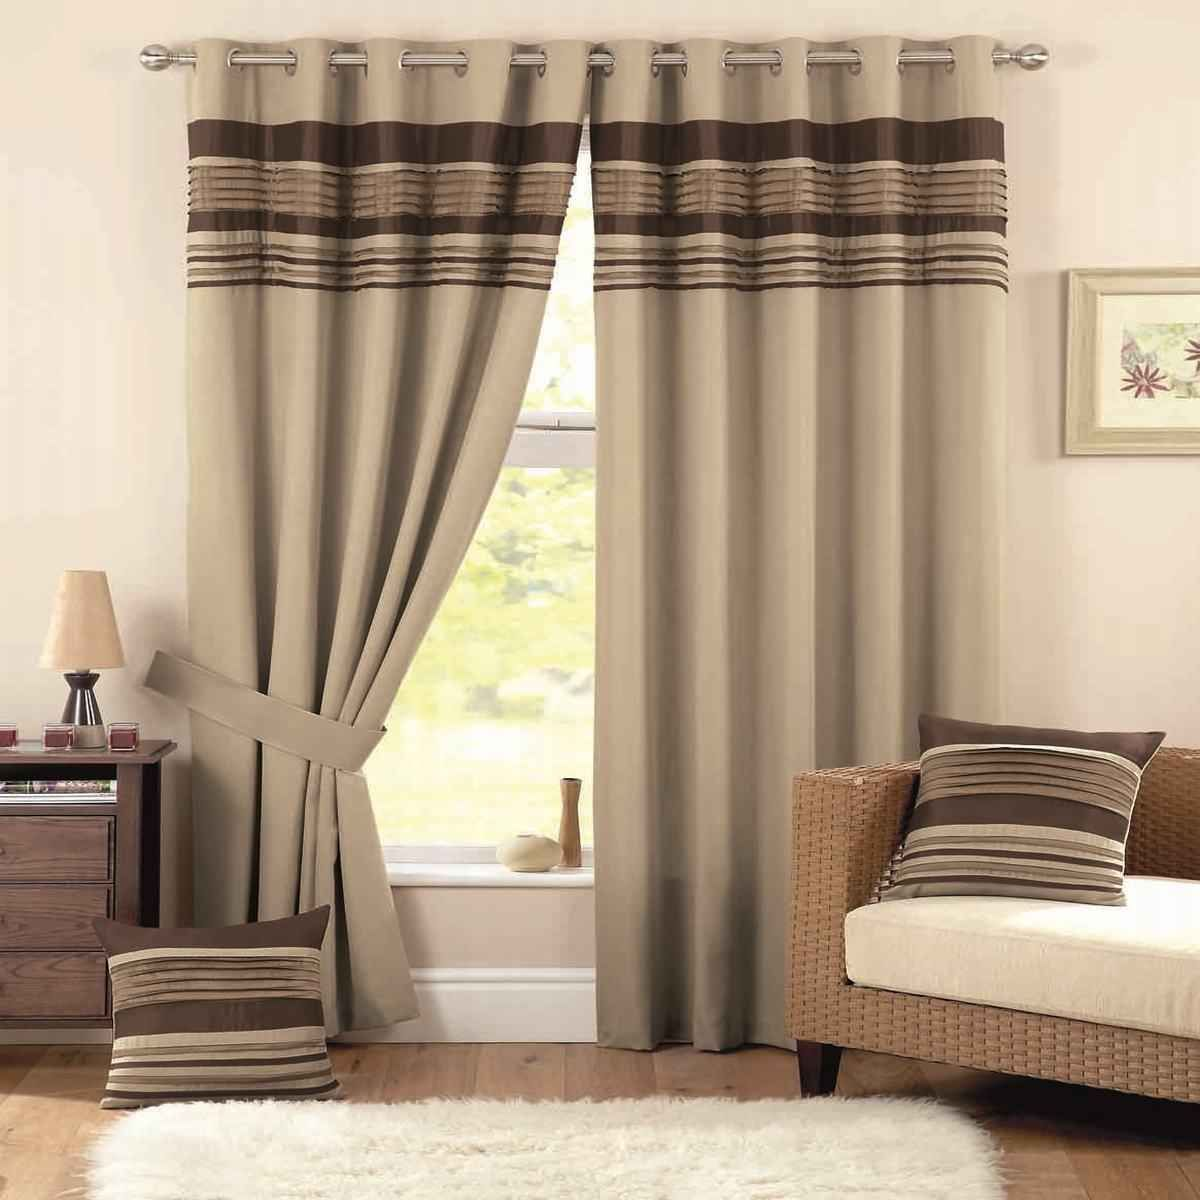 Curtains for every room | Tab curtains, Curtain ideas and Cheap ...